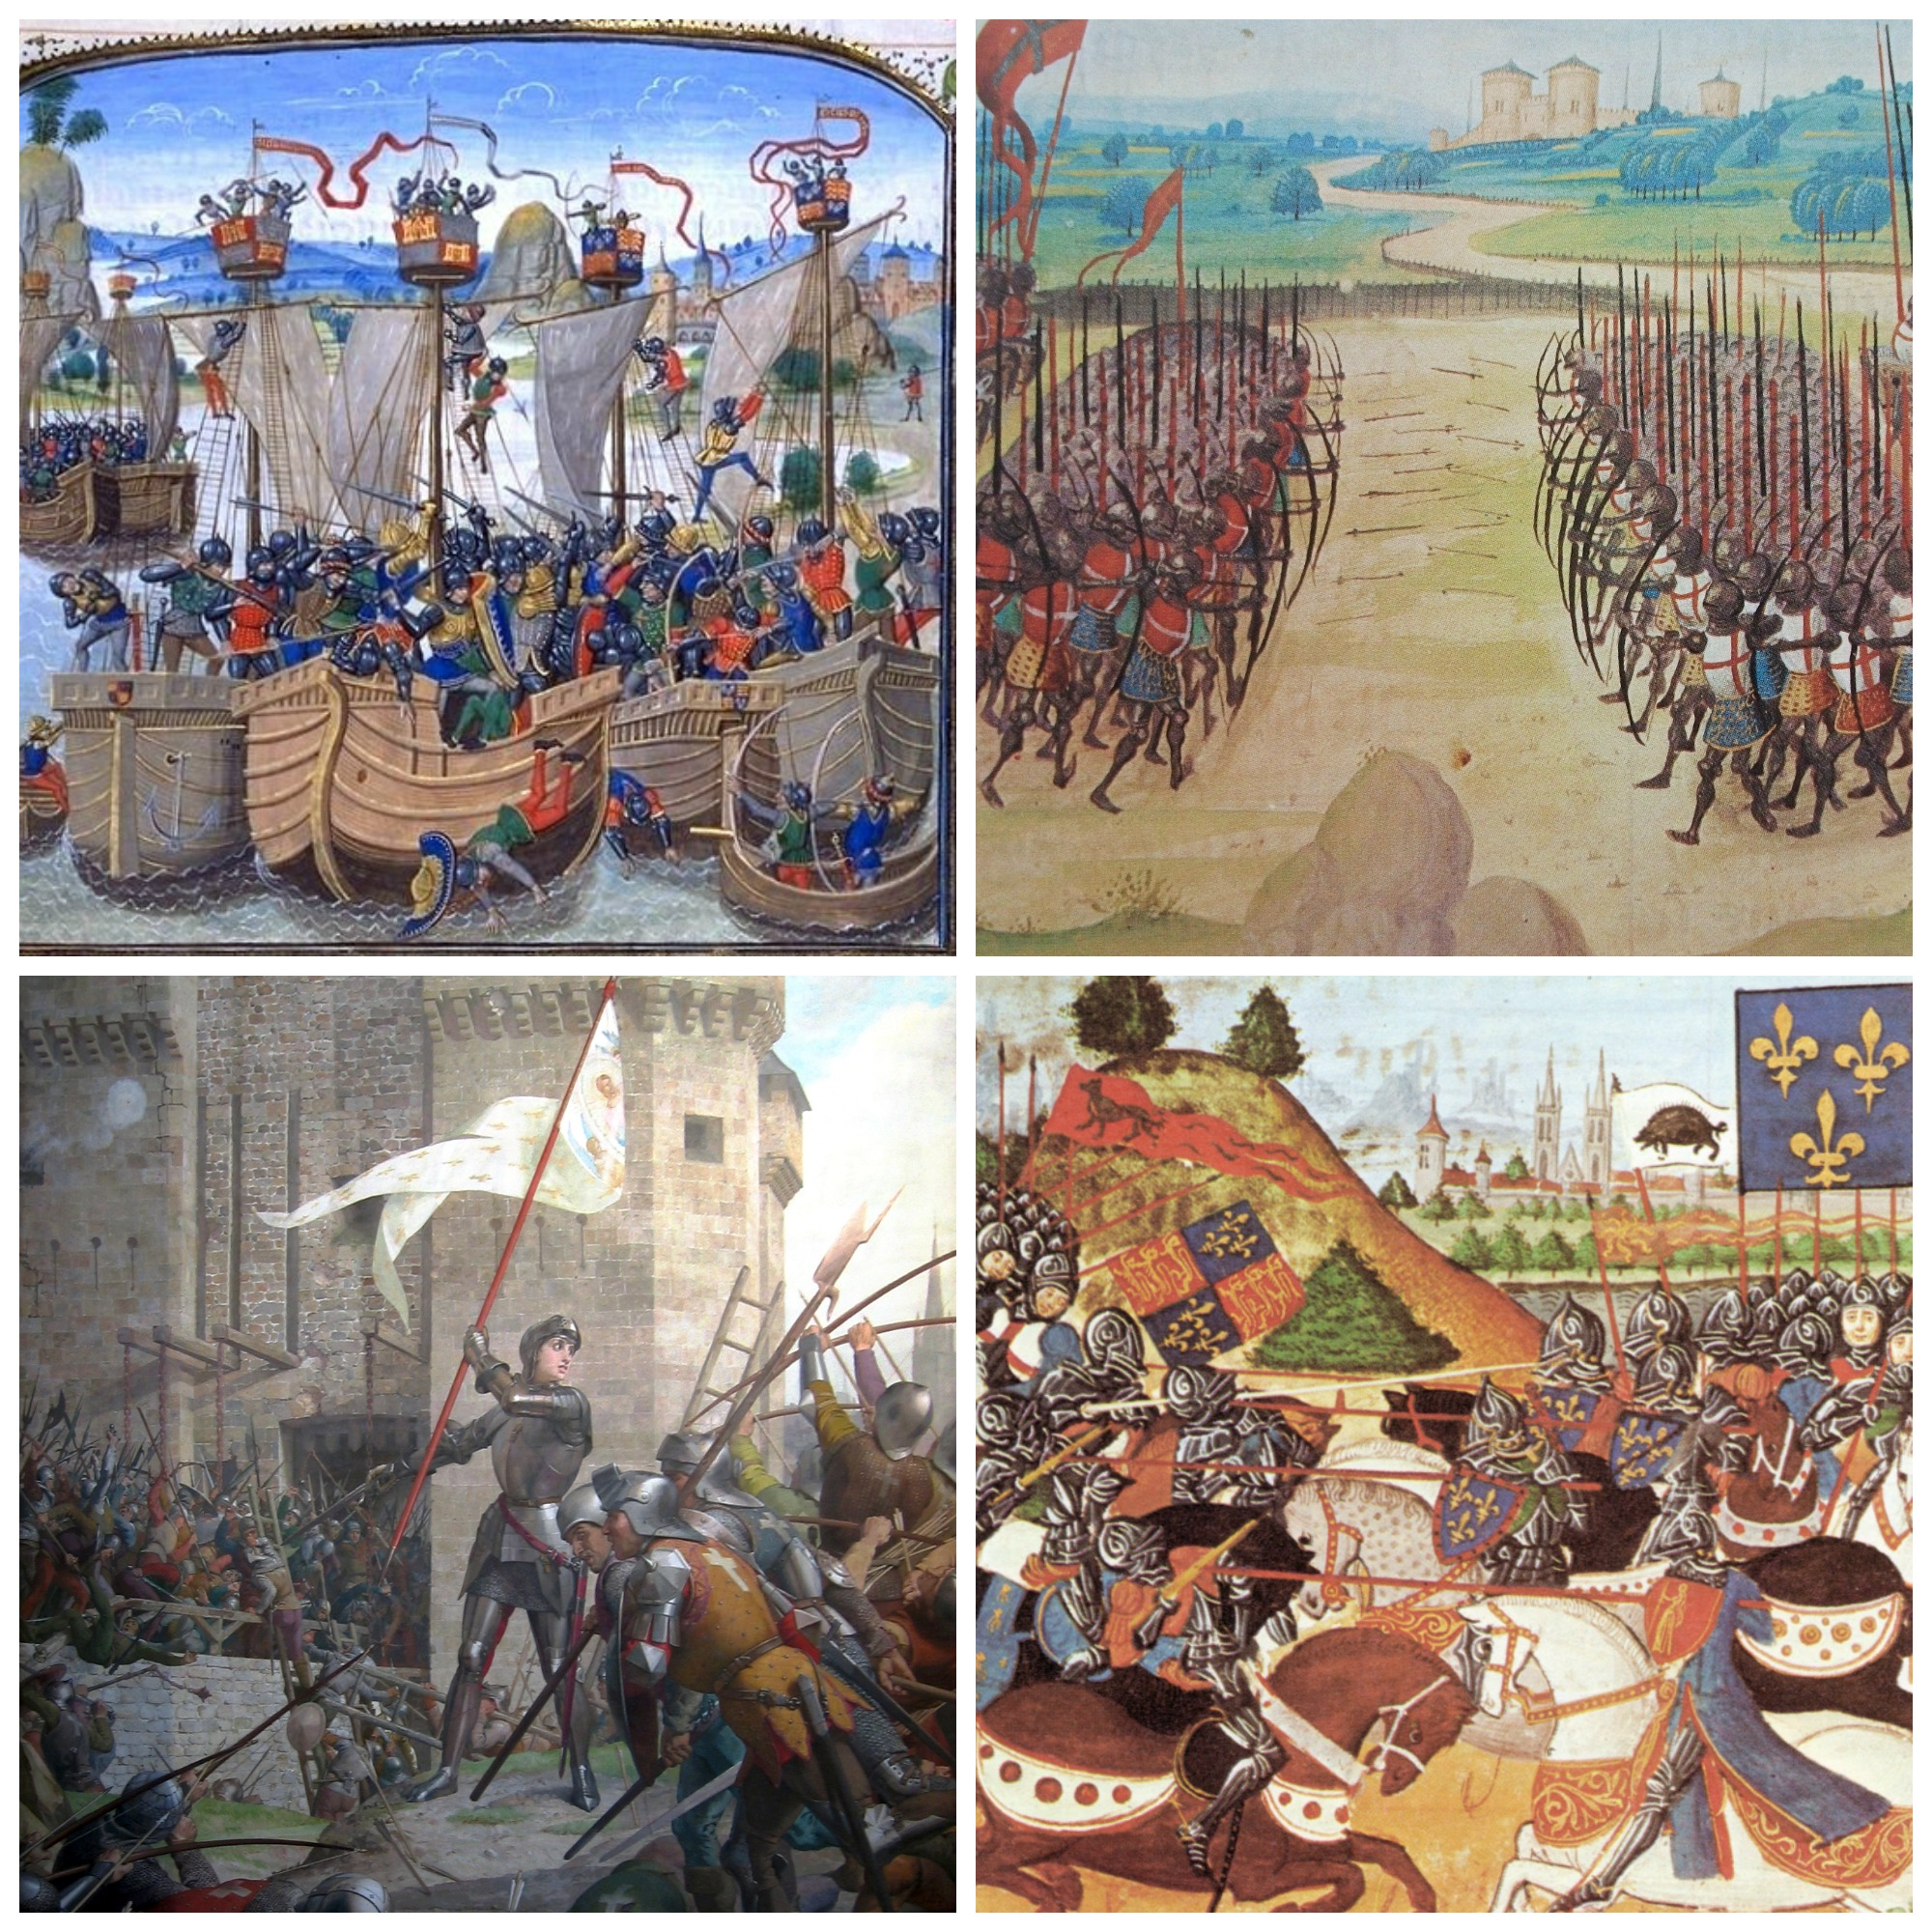 which statement accurately describes the hundred years war